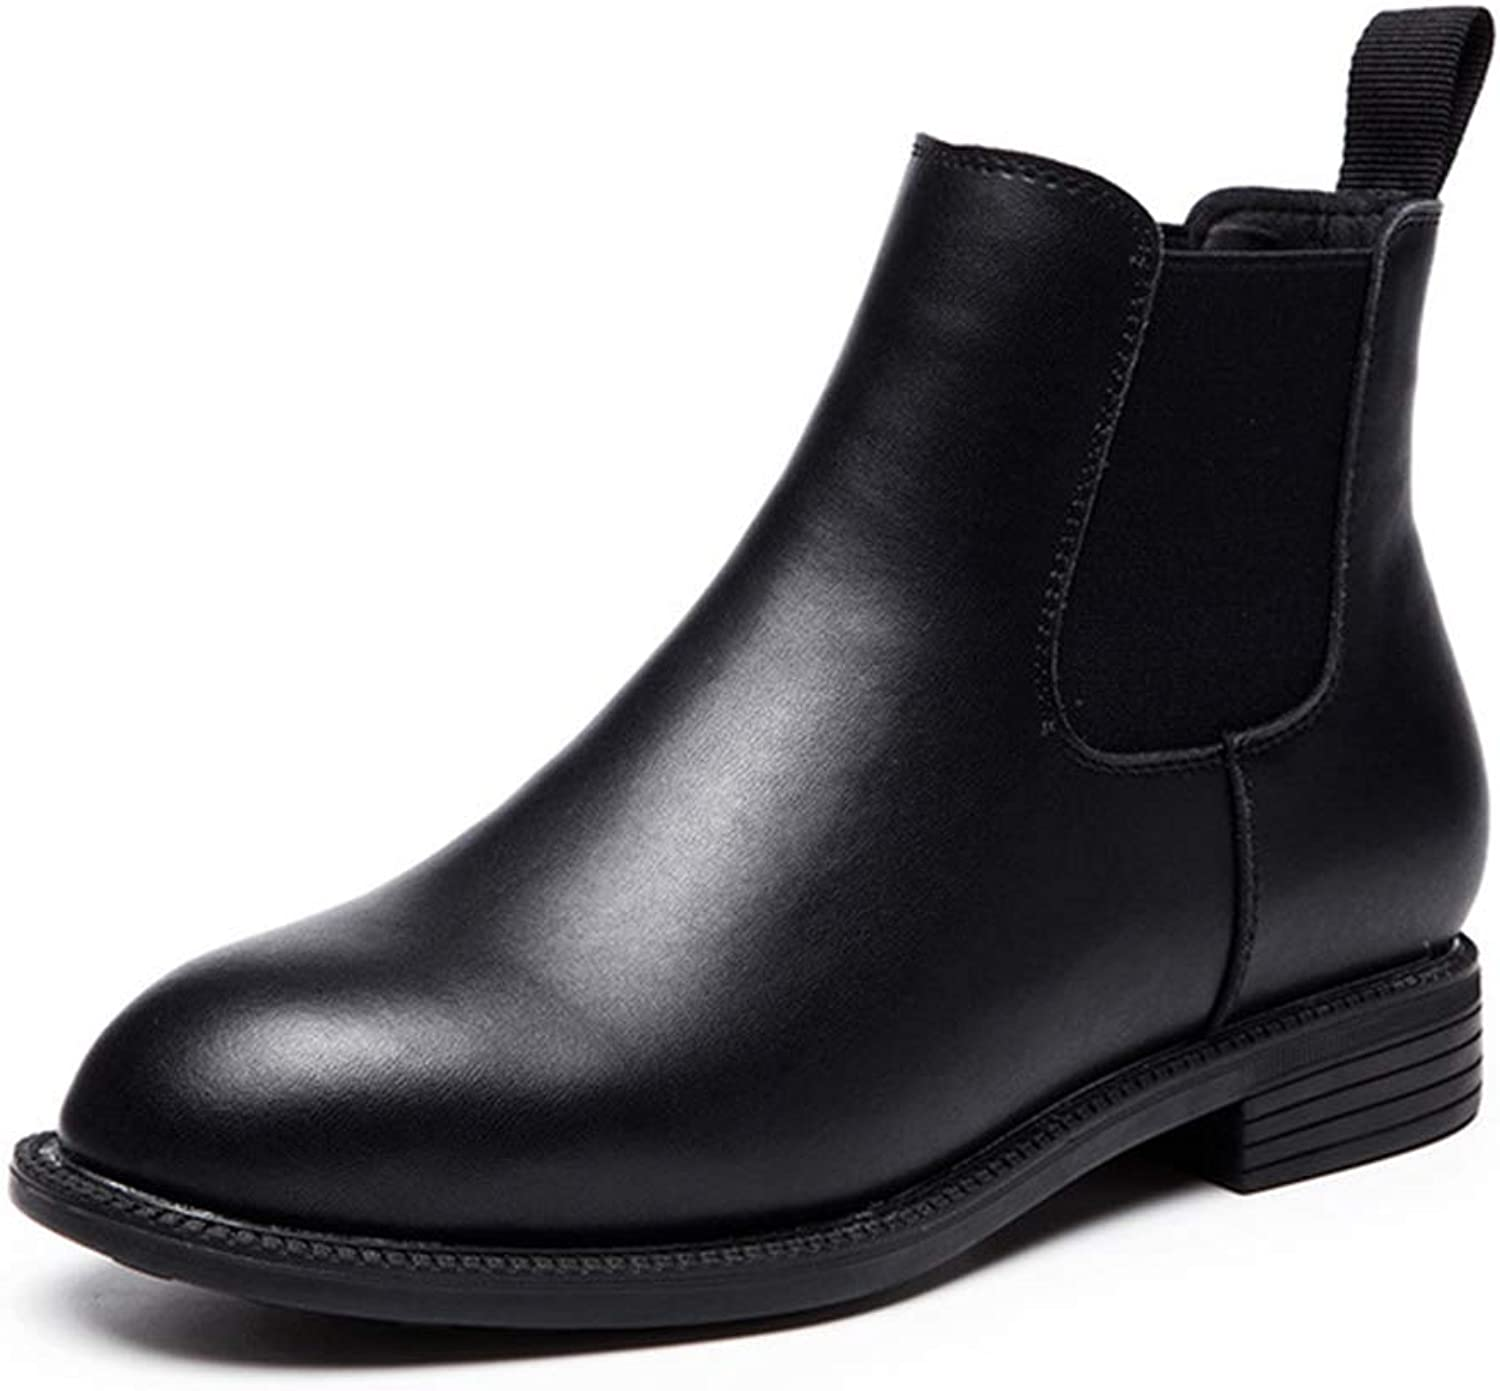 ZSXWIN New Women's Students Leather Thick with Fashion Boots